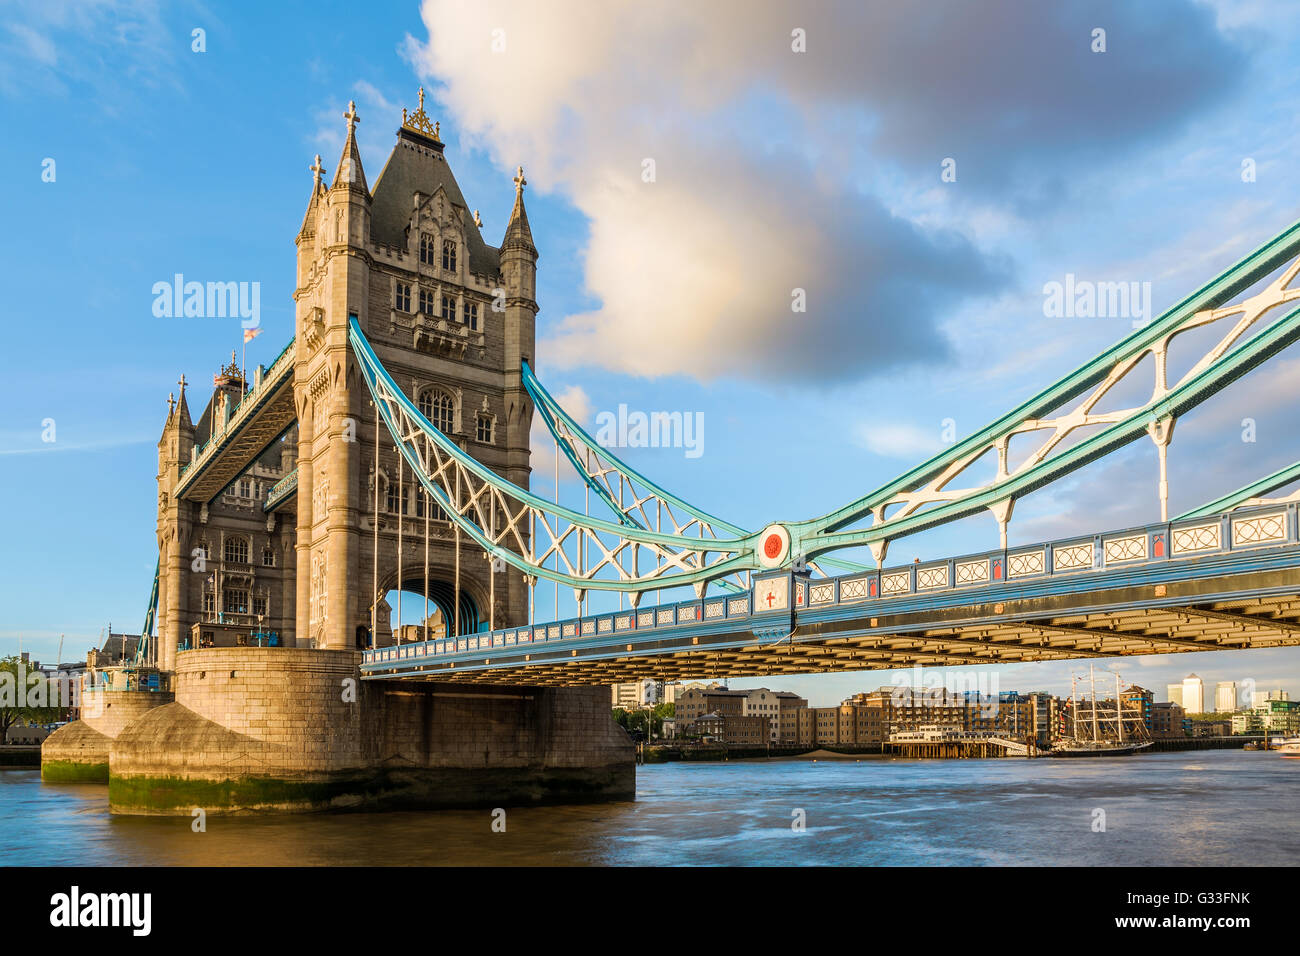 Tower Bridge in London during sunset with a closer look at the suspender design - Stock Image